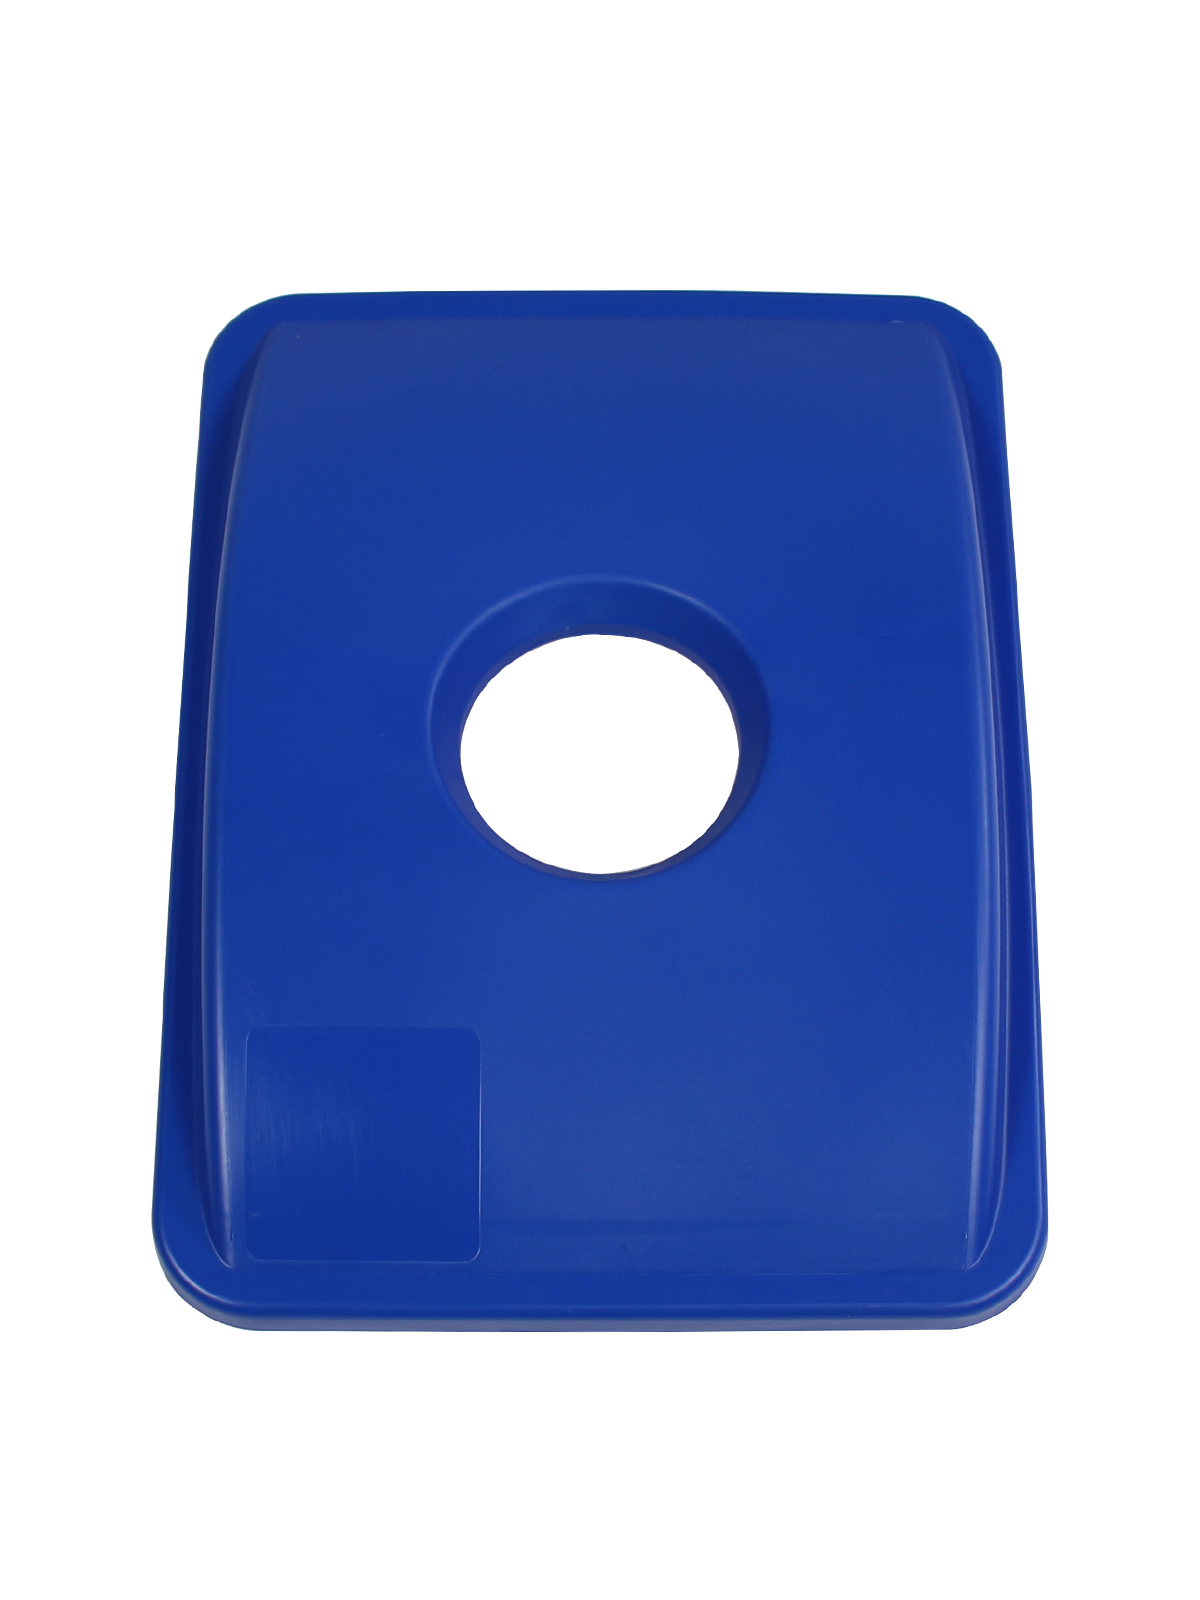 WASTE WATCHER XL - Single - Lid - Circle - Royal Blue